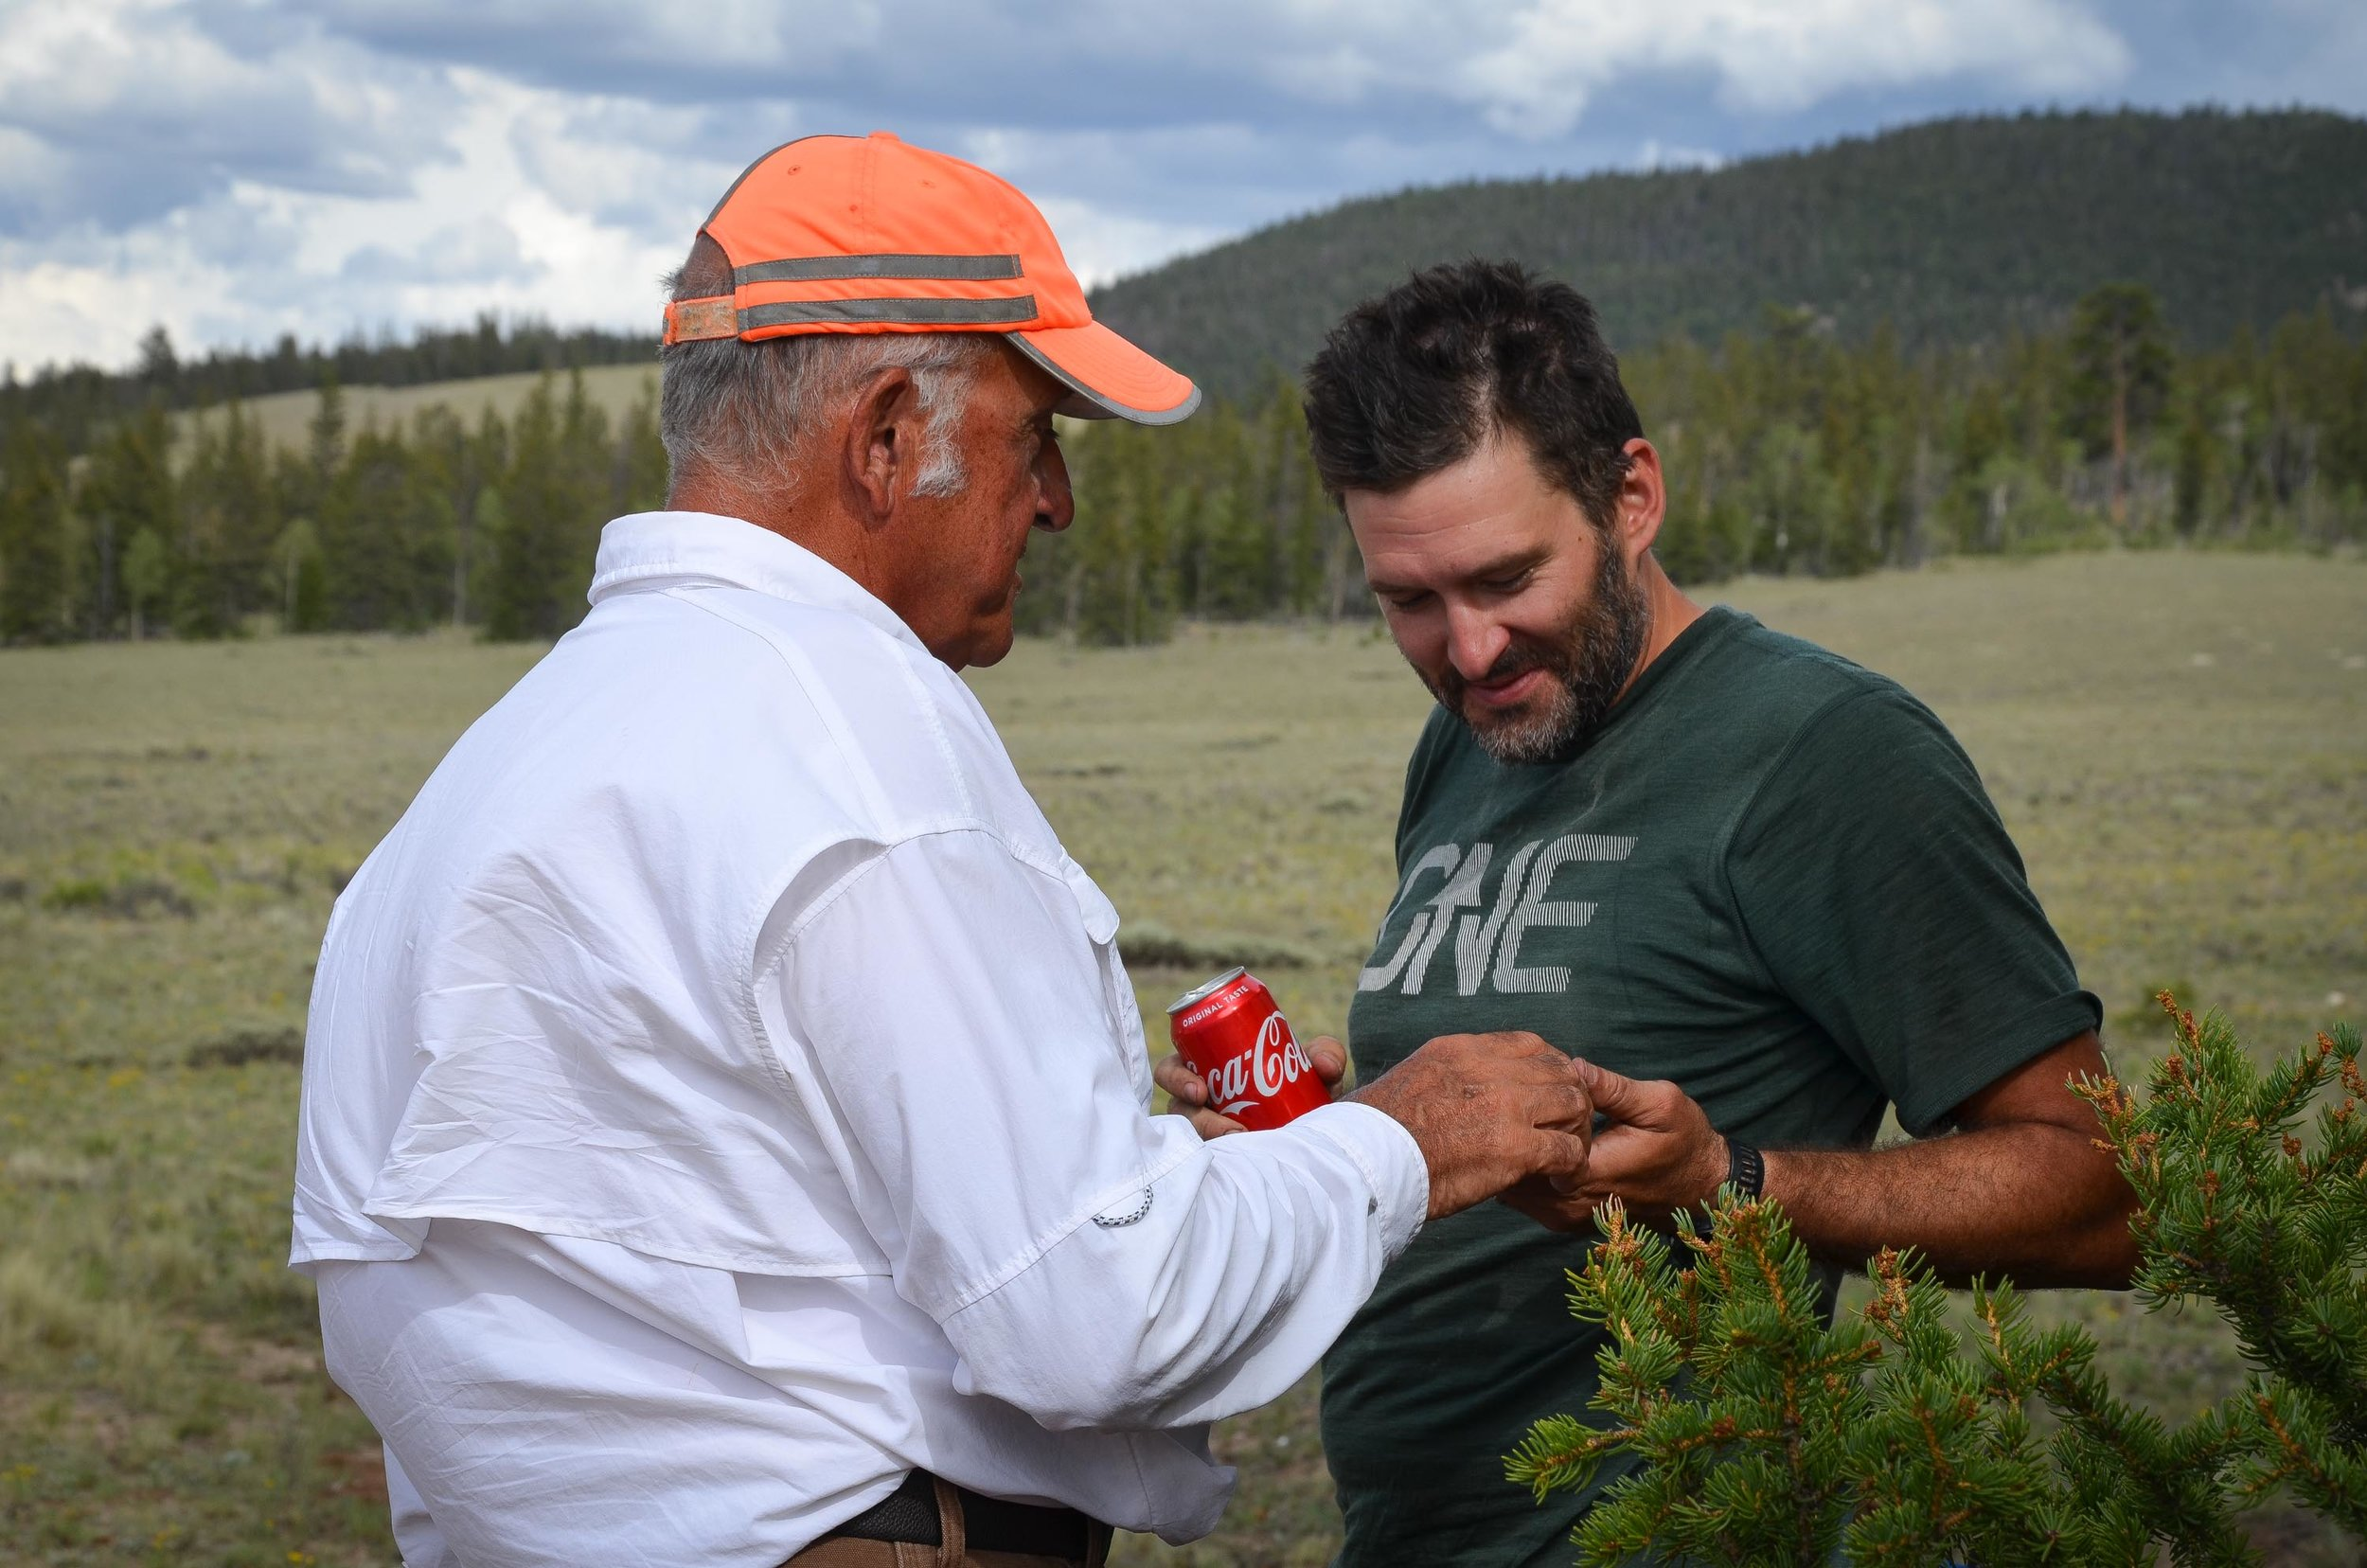 Bill AppeL talks with a traveler at his aid station along the Colorado Trail. (Photo by Willow Belden)